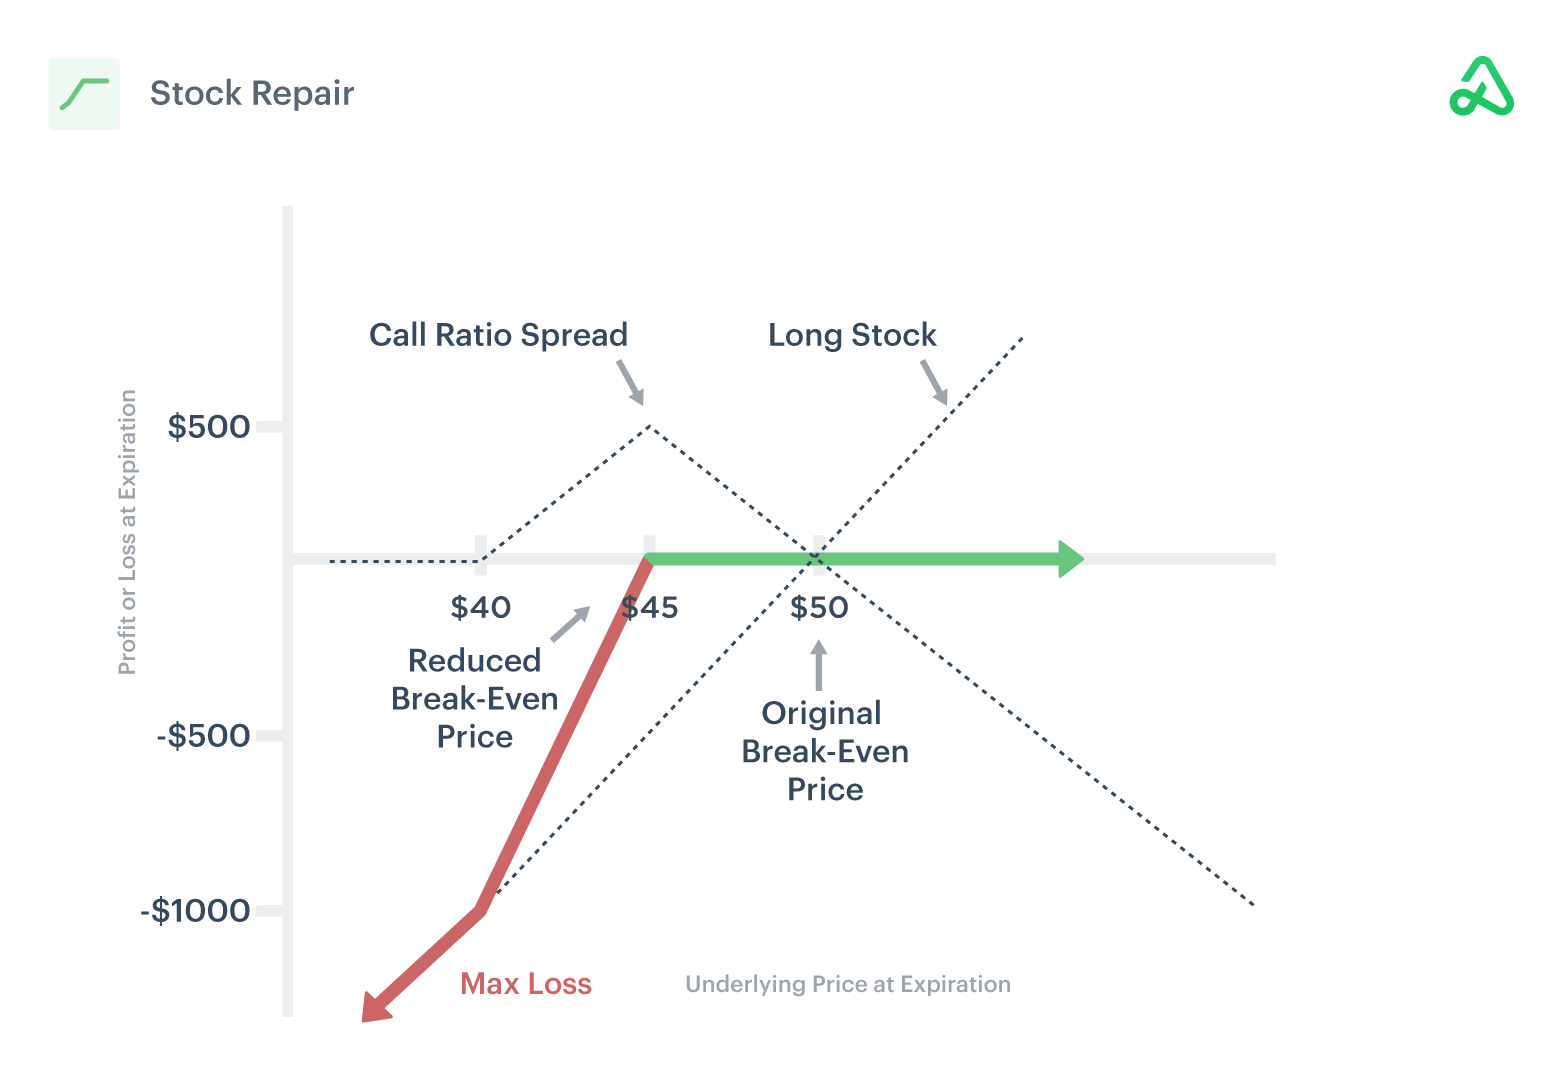 Image of stock repair payoff diagram showing max profit, max loss, and break-even points